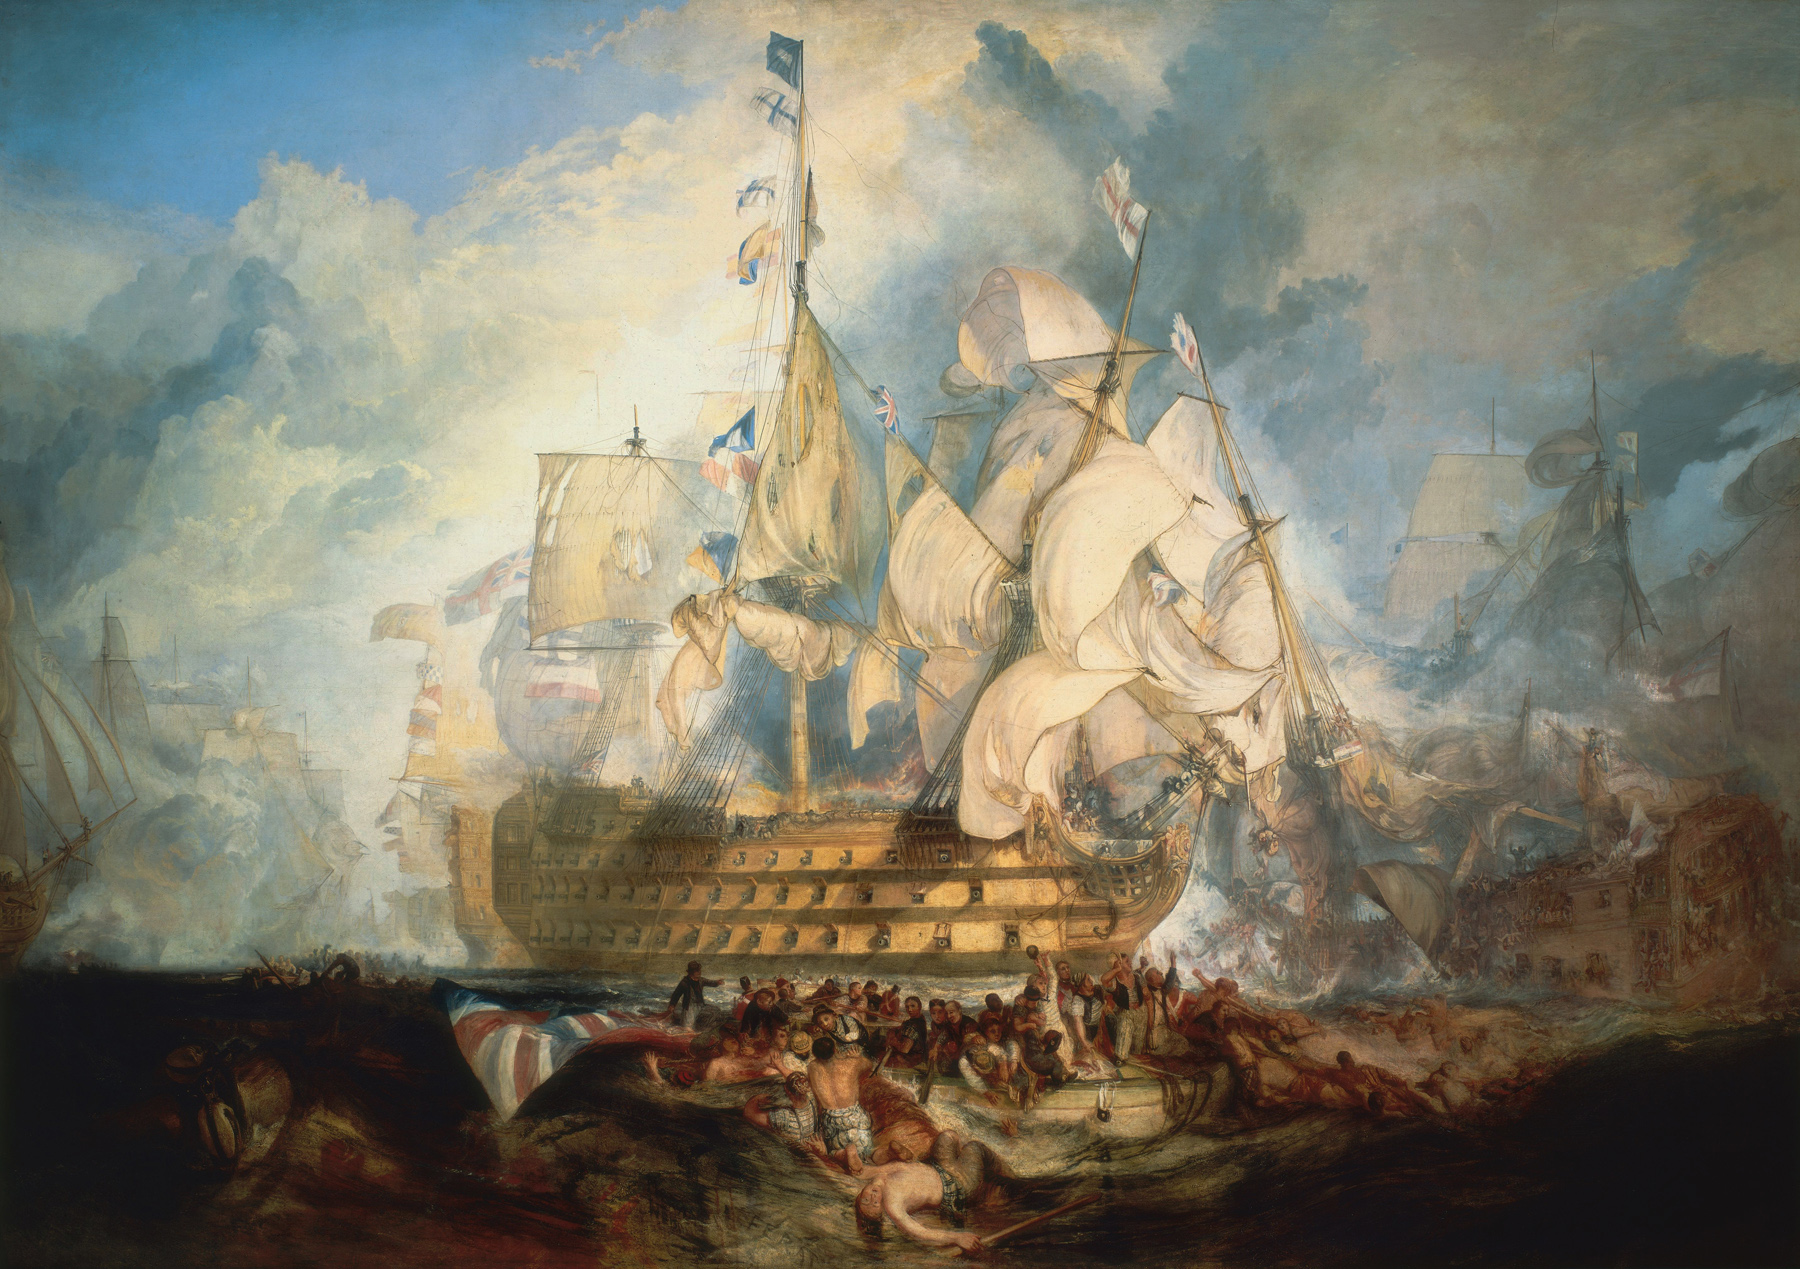 L'art dans toute sa splendeur Turner,_The_Battle_of_Trafalgar_(1822)